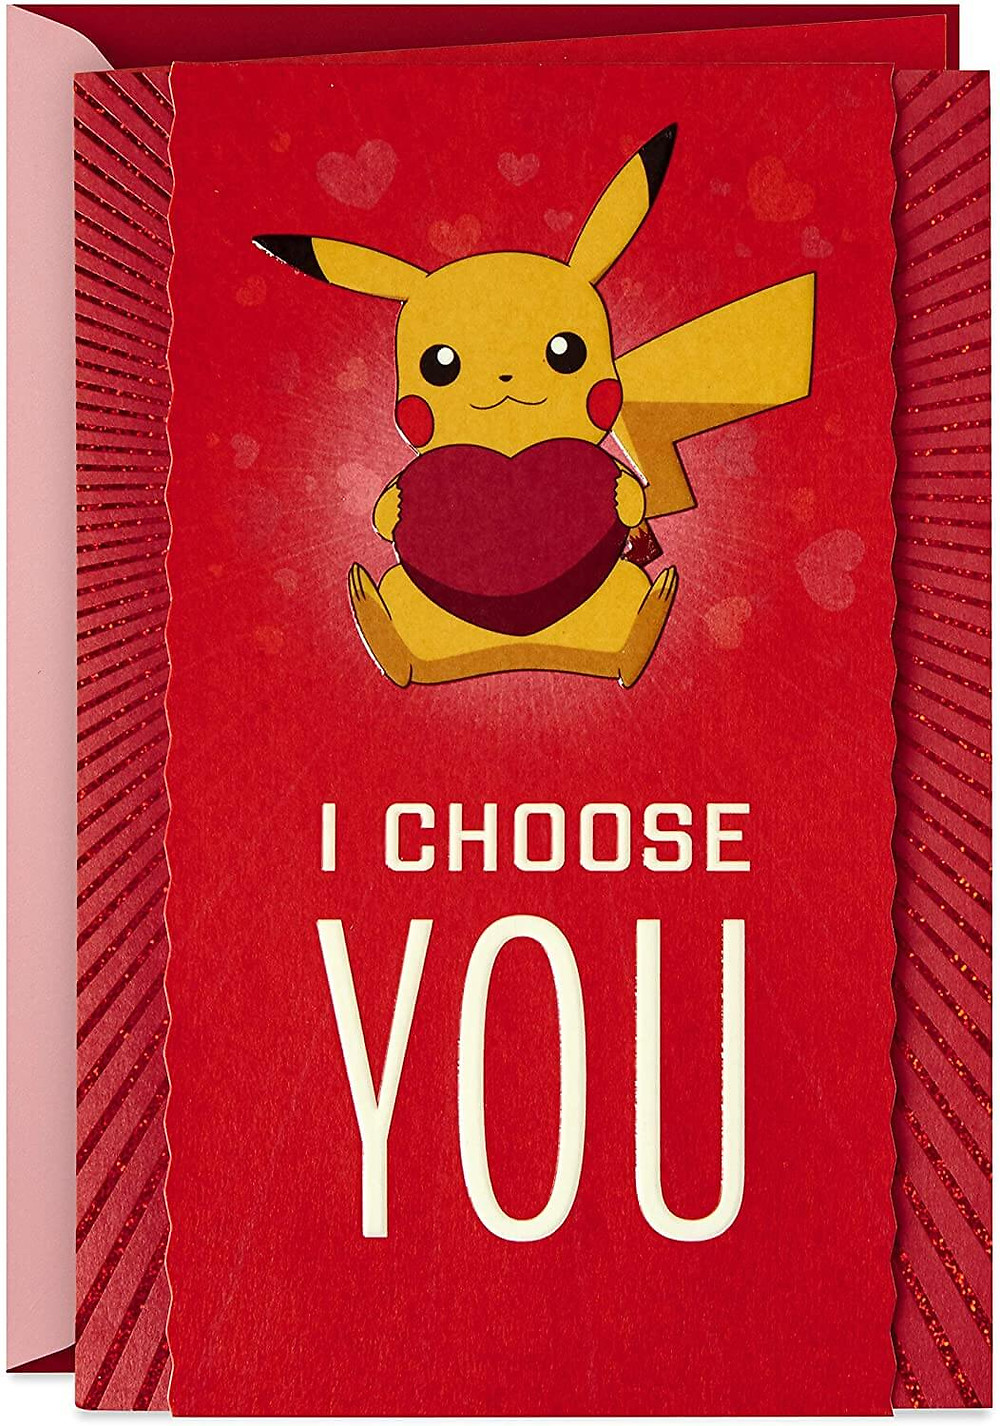 ideas for valentine's card